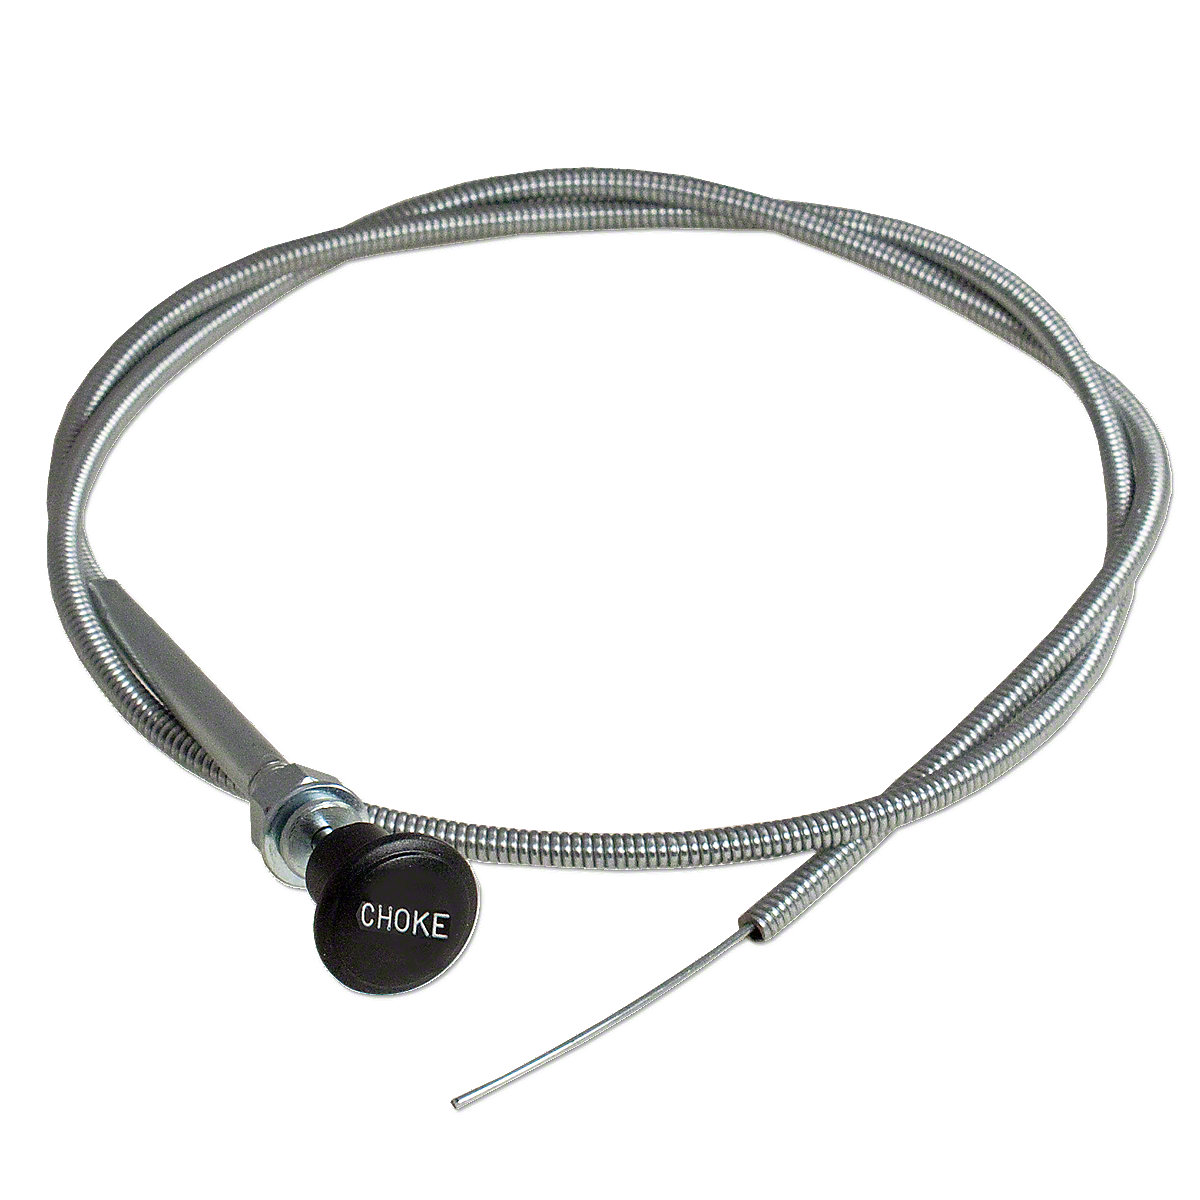 Universal Metal Sheathed Choke Cable For Massey Harris And Massey Ferguson Tractors.